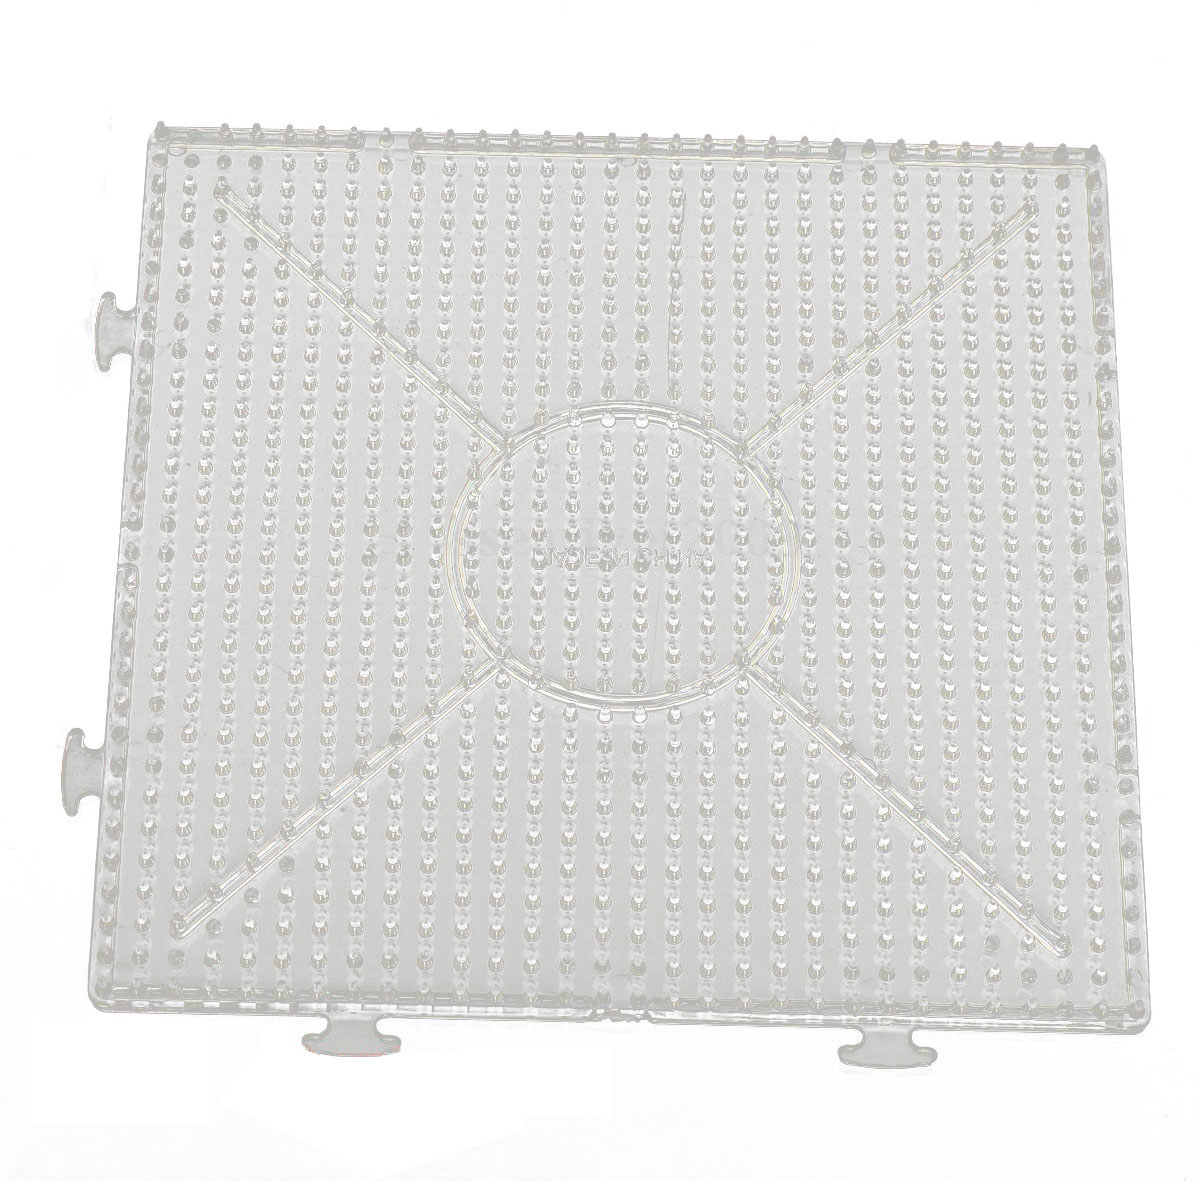 Computer & Office 4pcs Abc Clear 145x145mm Square Large Pegboards Board For Hama Fuse Perler Bead Commodities Are Available Without Restriction Computer Components